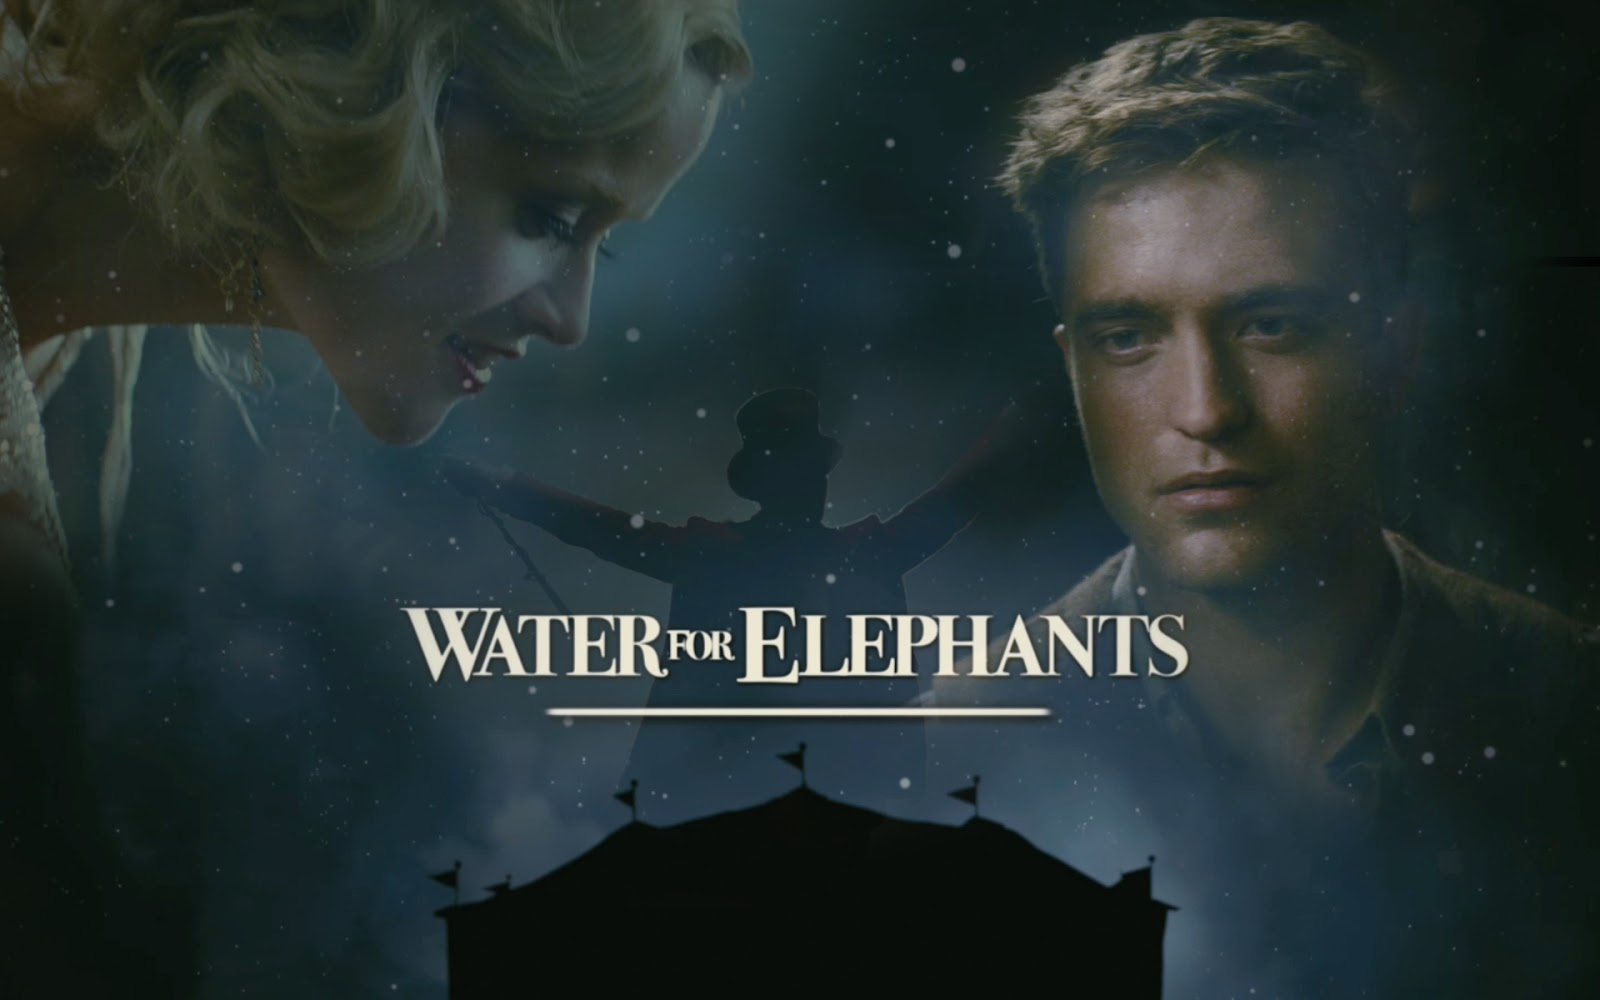 http://2.bp.blogspot.com/-QQNvzMWaPM0/TZ9JcUhjgWI/AAAAAAAACRo/dRUAnSPE8nY/s1600/WFE-wallpaper-water-for-elephants-17810987-1920-1200.jpg